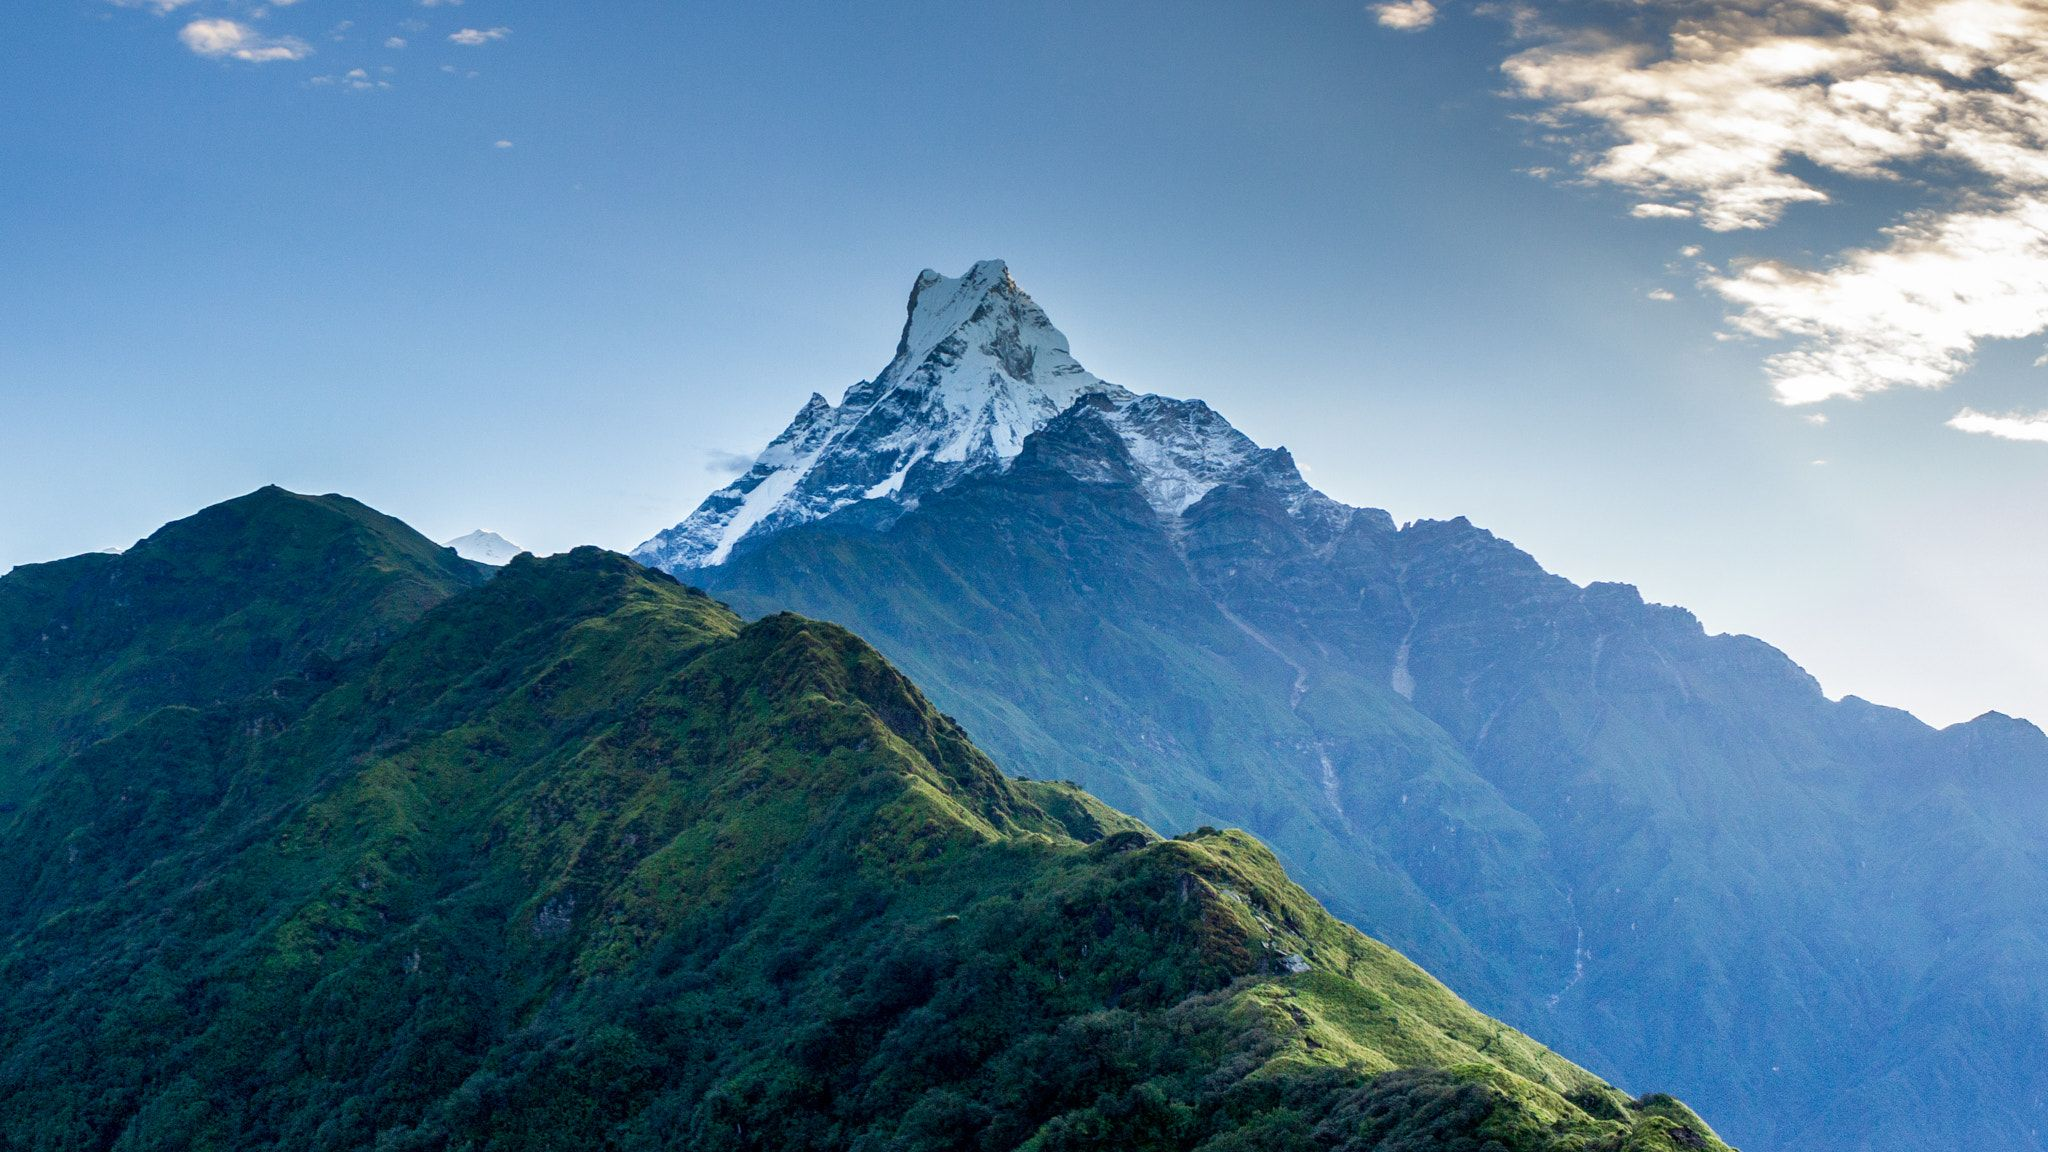 Machhapuchre - Macchapuchre (meaning Fishtail) during the ...